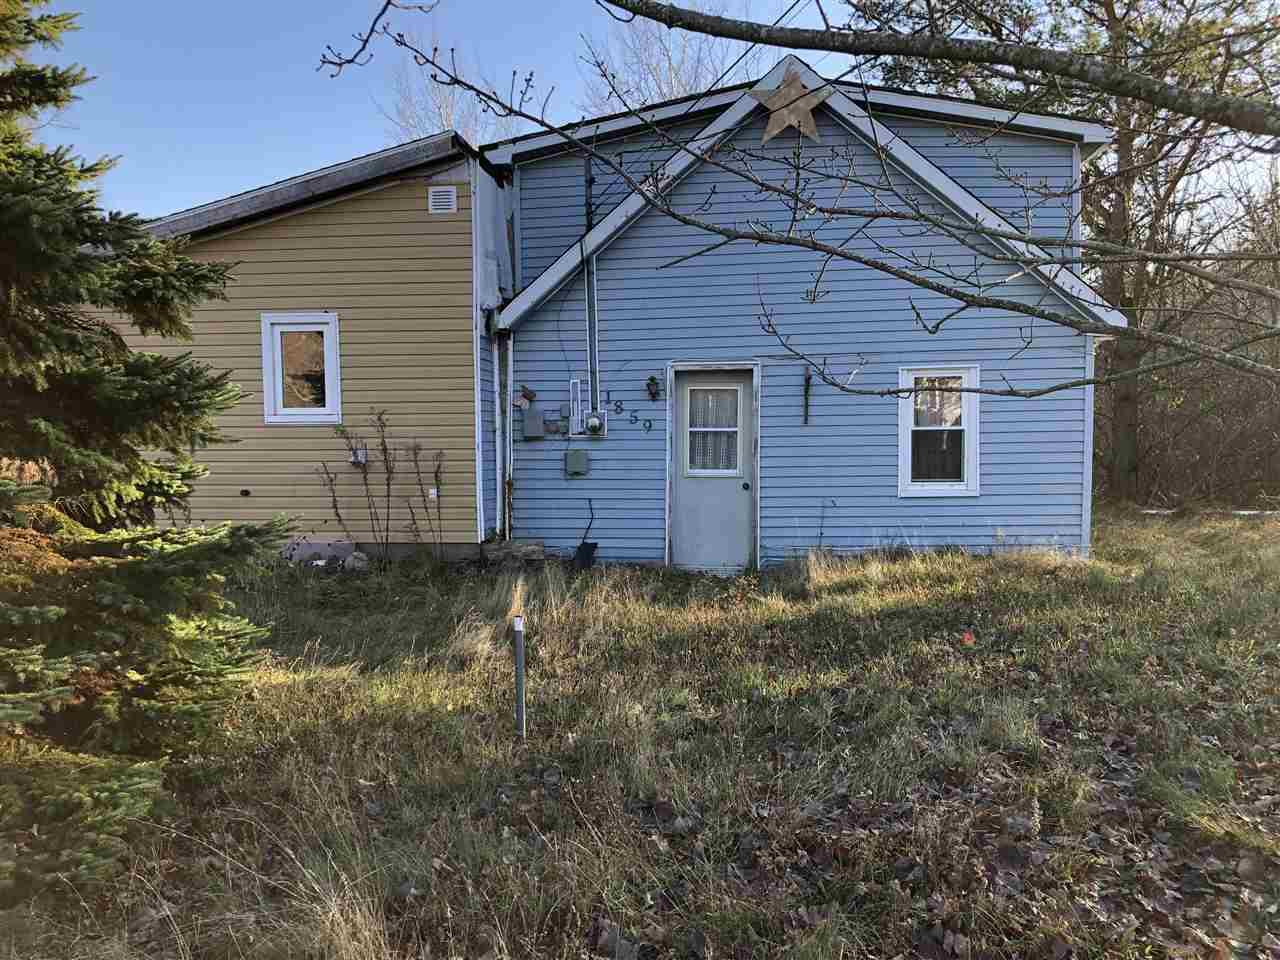 1859 ACADIA Avenue, Westville, NS B0K 2A0, 3 Bedrooms Bedrooms, ,1 BathroomBathrooms,Residential,For Sale,1859 ACADIA Avenue,202024070